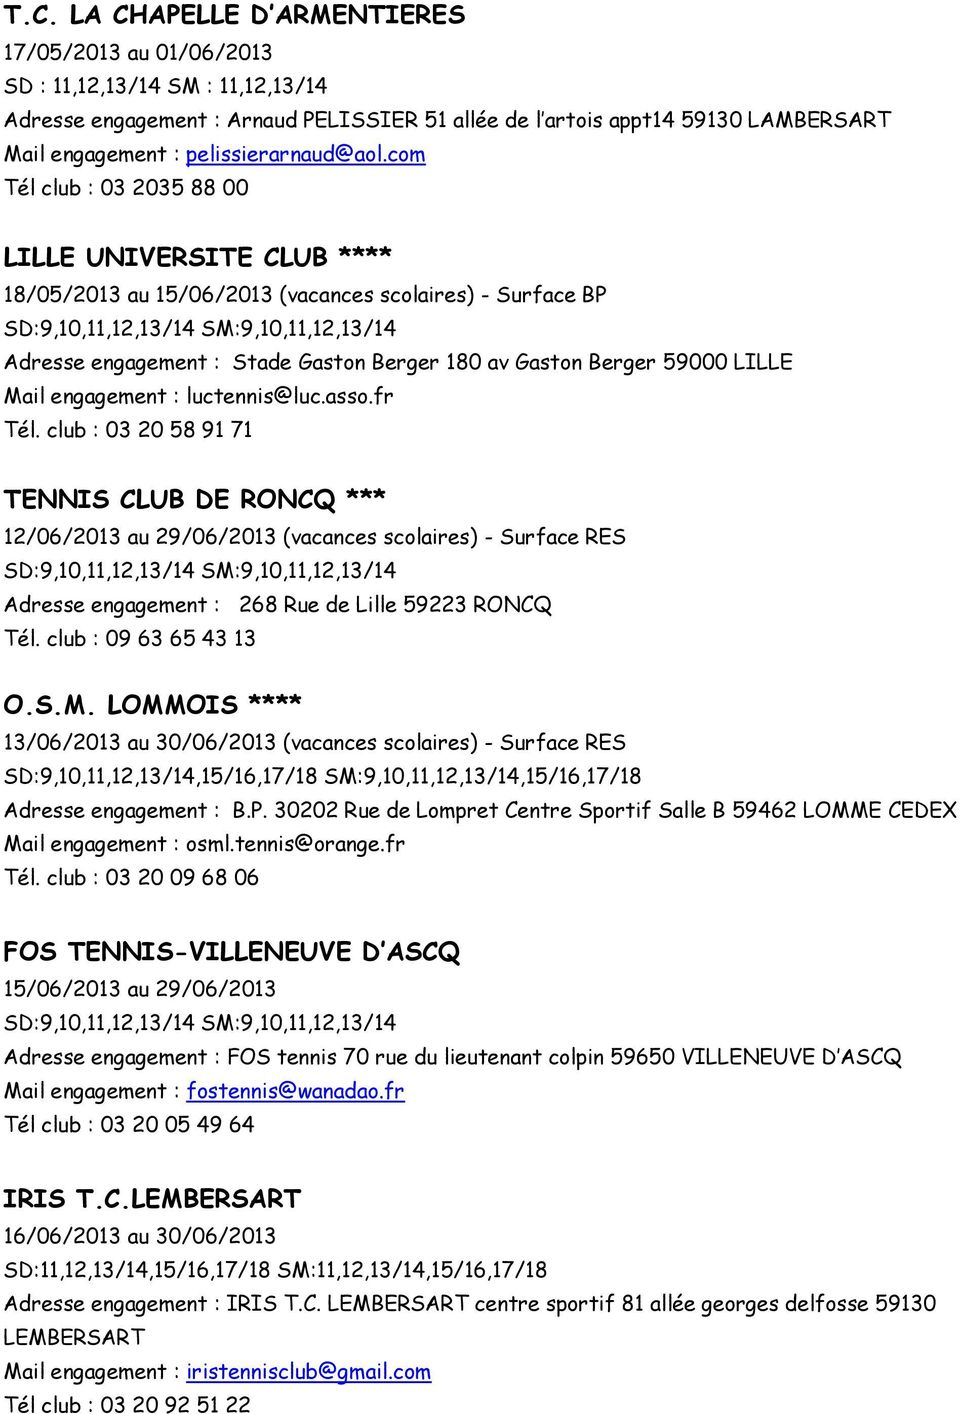 com Tél club : 03 2035 88 00 LILLE UNIVERSITE CLUB **** 18/05/2013 au 15/06/2013 (vacances scolaires) - Surface BP SD:9,10,11,12,13/14 SM:9,10,11,12,13/14 Adresse engagement : Stade Gaston Berger 180